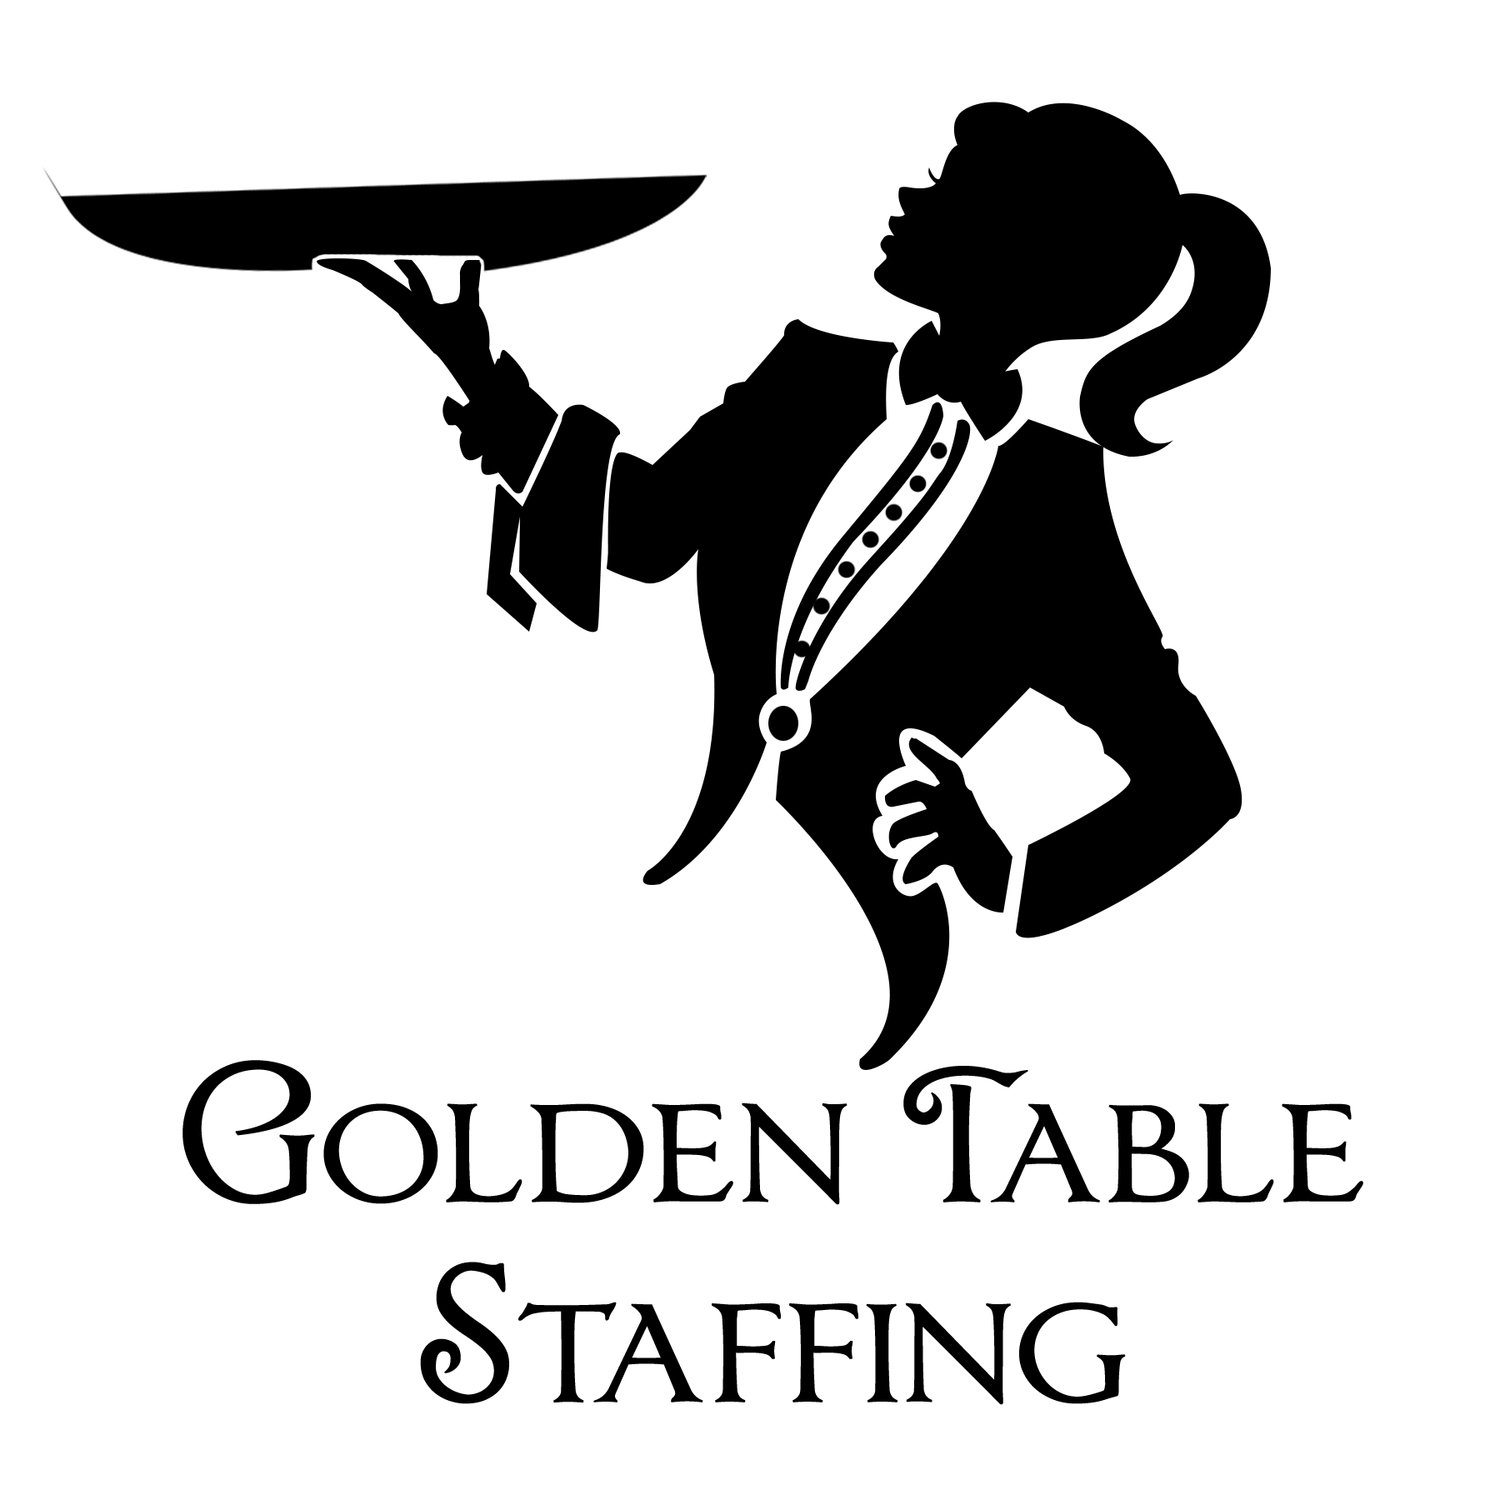 Golden Table Staffing